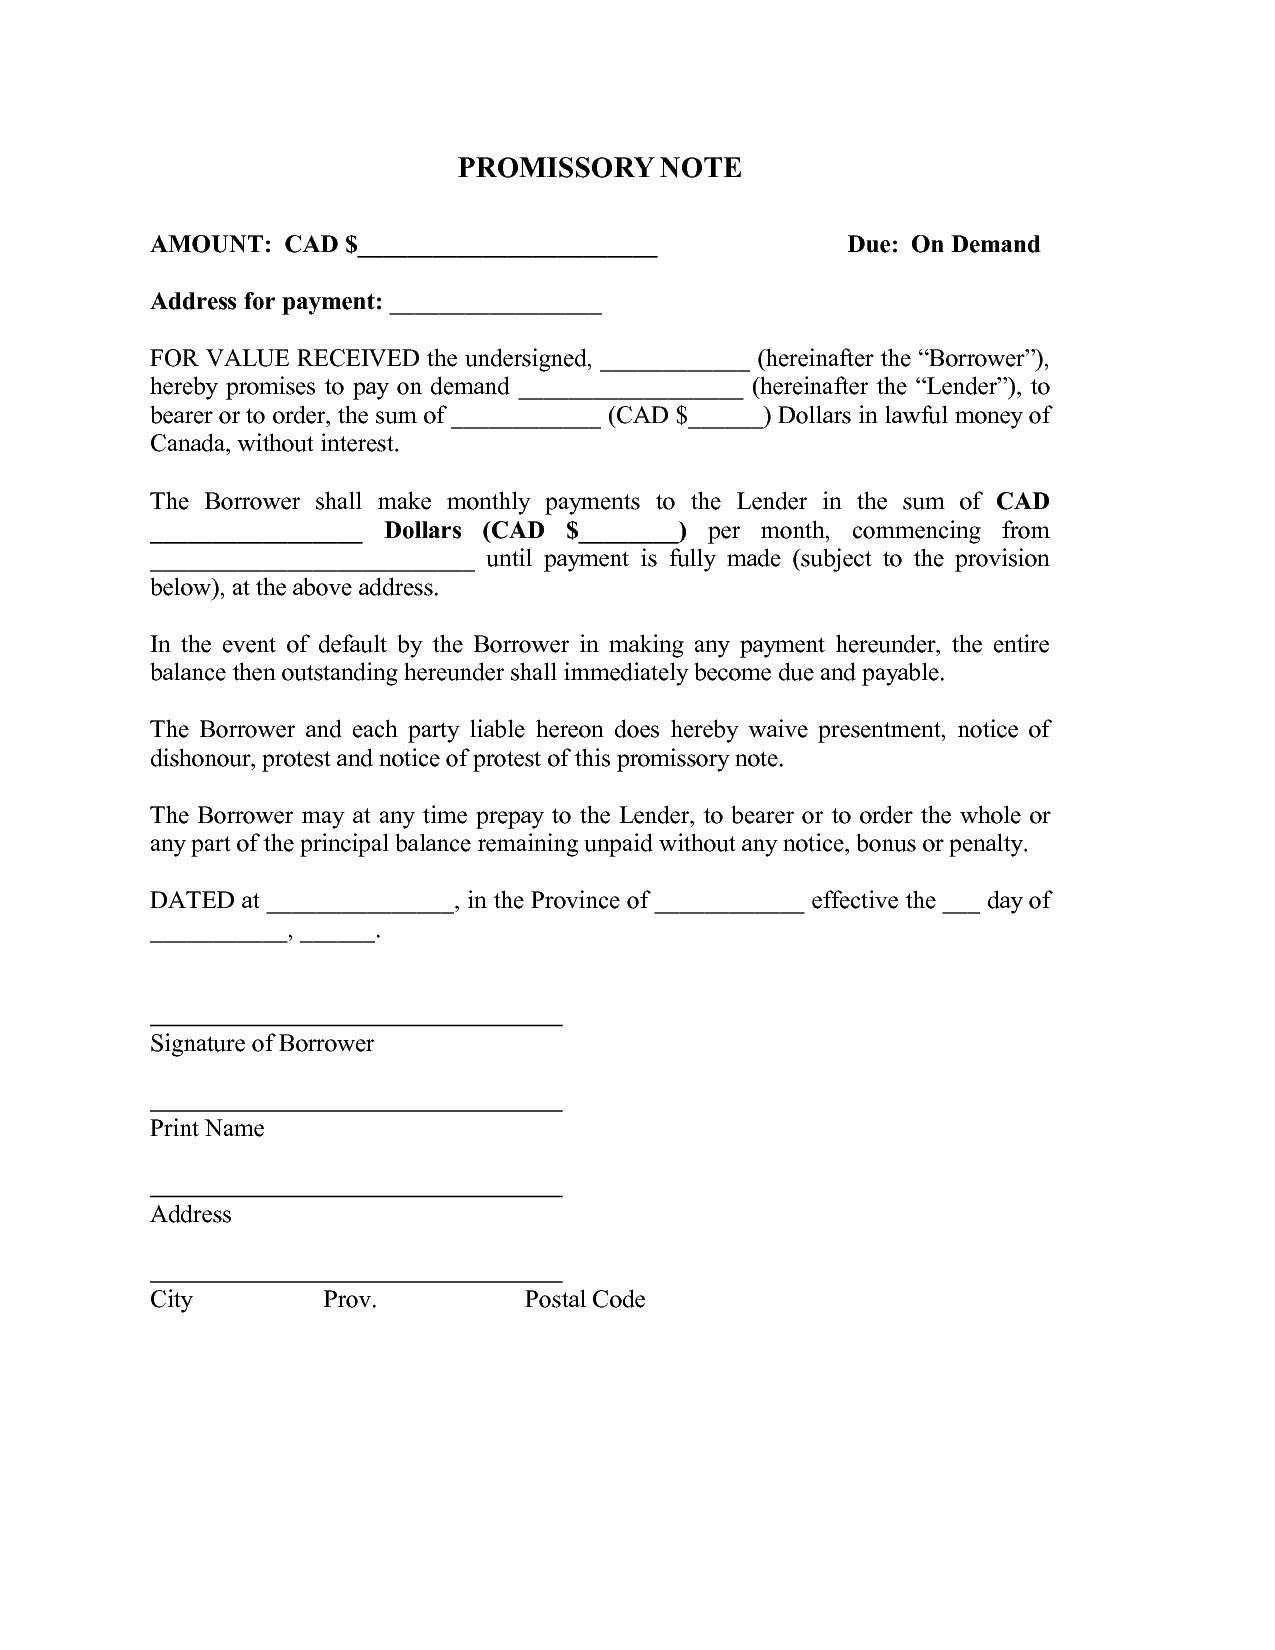 Demand letter promissory note template samples letter for Promissory note template arizona